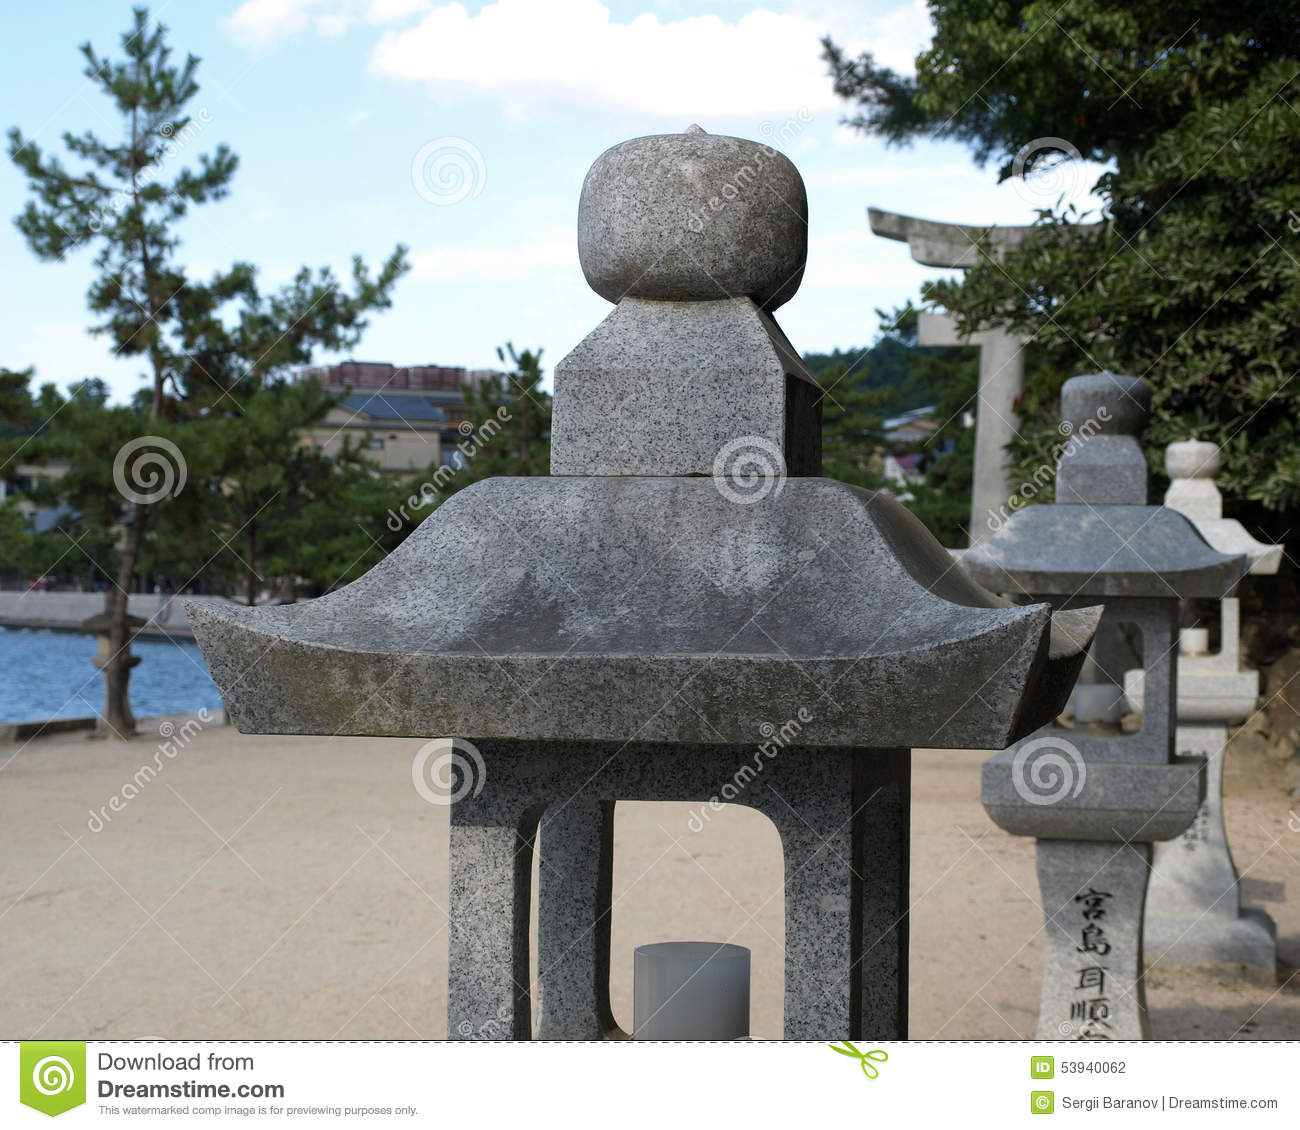 Symbolic Stone Lamp At Buddhist Temple Stock Photo - Image of ... for Temple Stone Lamp  199fiz